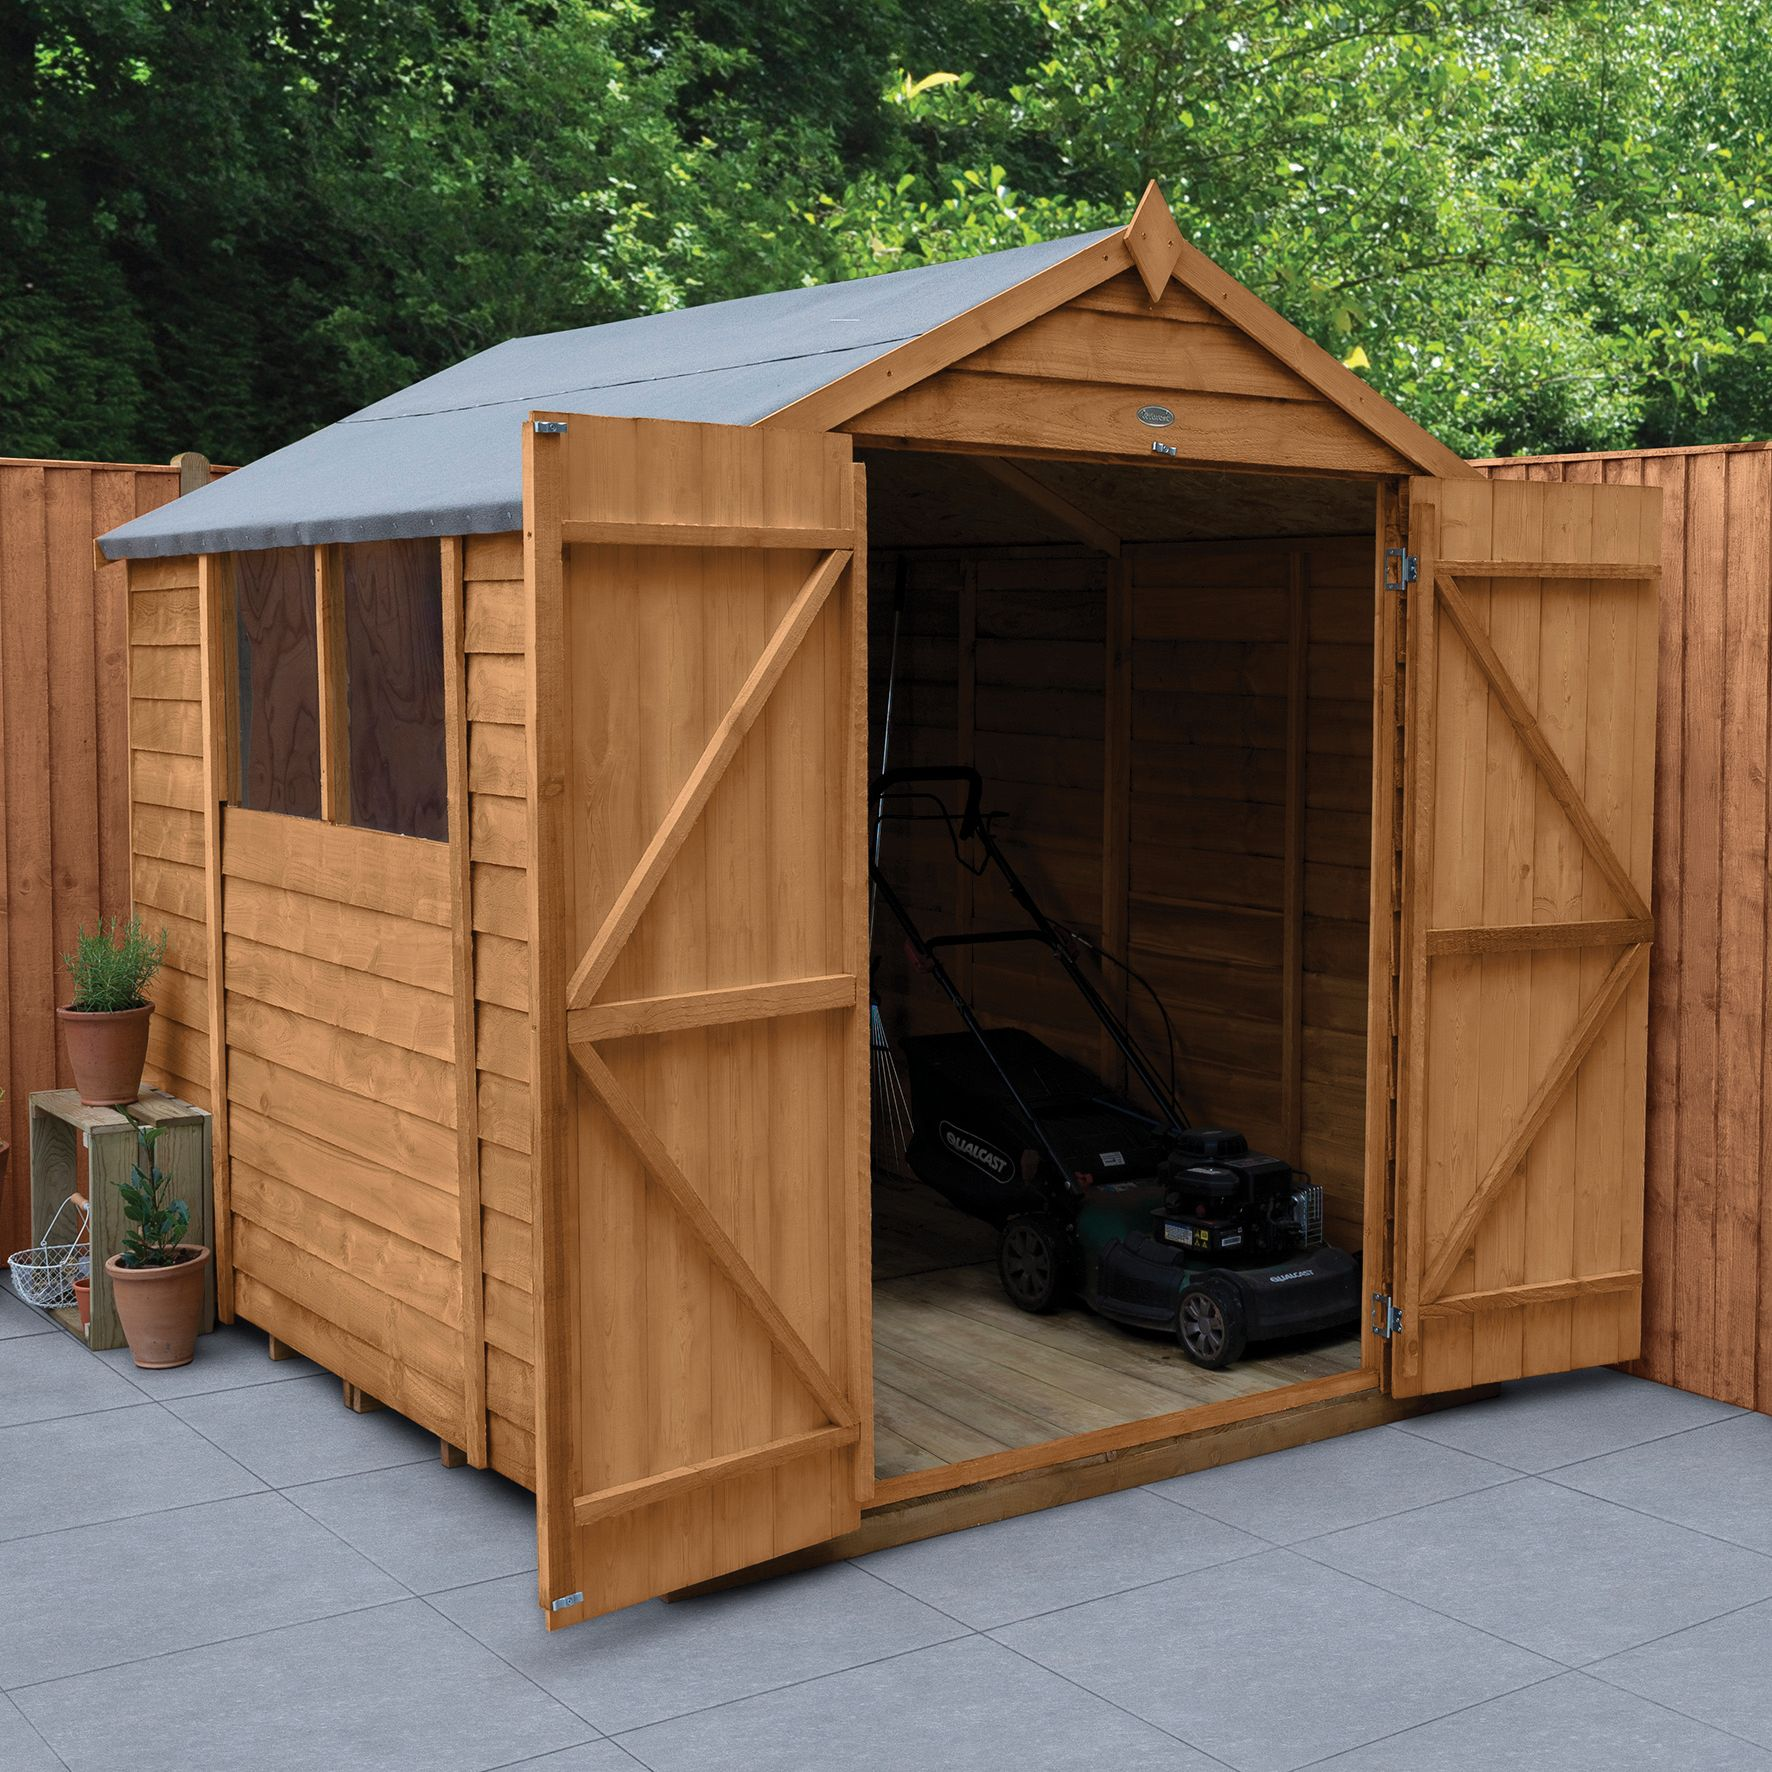 Wickes Apex Overlap Dip Treated Double Door Shed 6 X 8 Ft | Wickes.co.uk